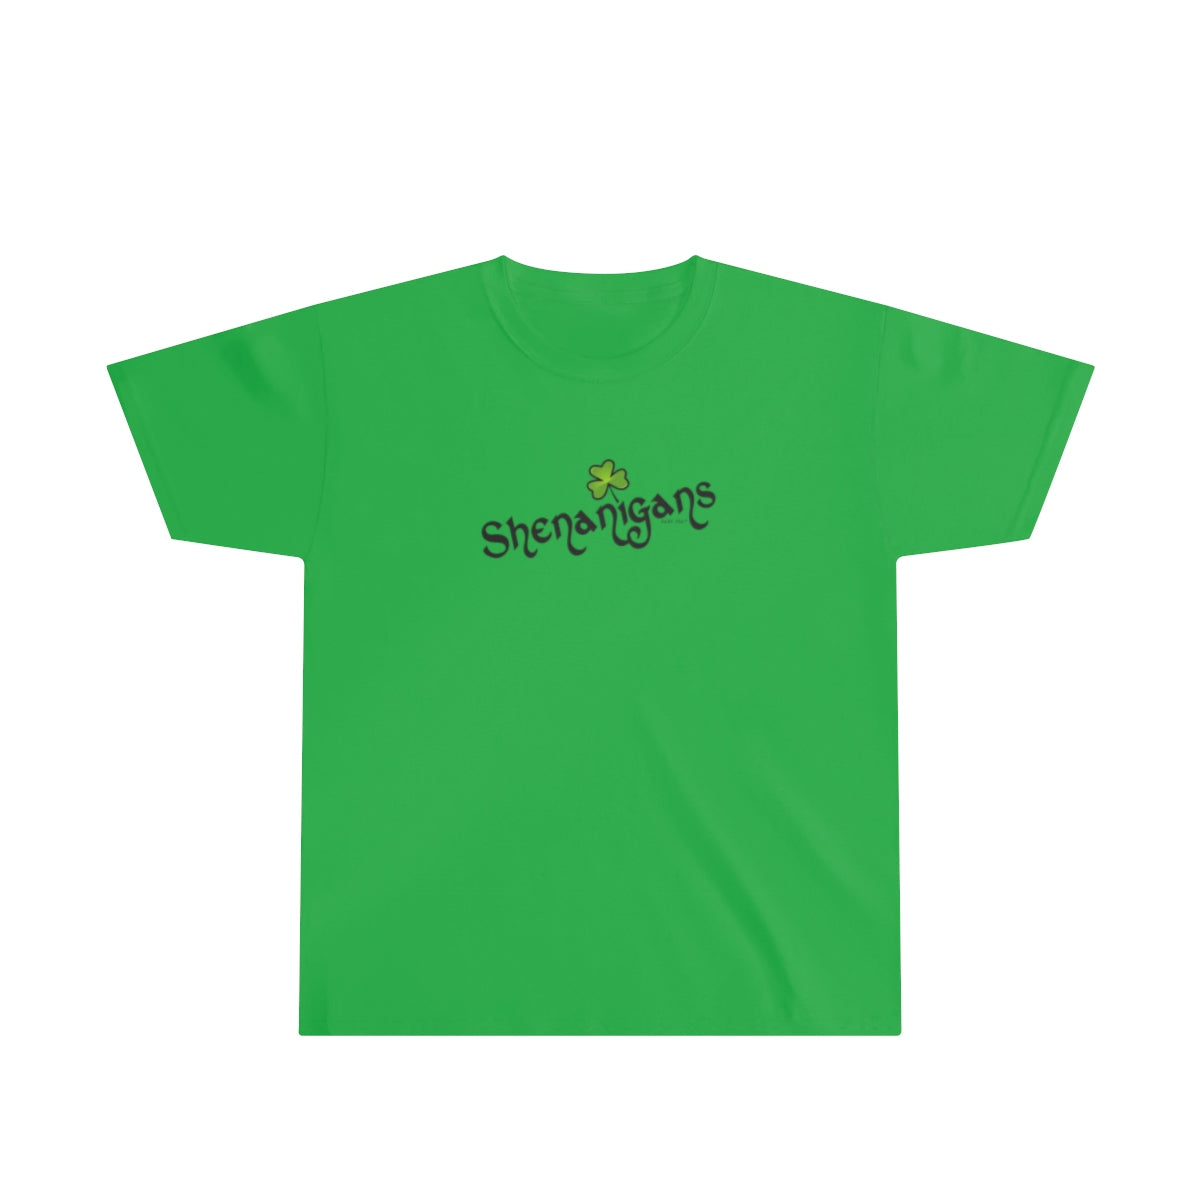 Shenanigan's | Youth Ultra Cotton Tee | 13 Colors - Baby Pea Clothing Fashion for Babies & Kids of all ages